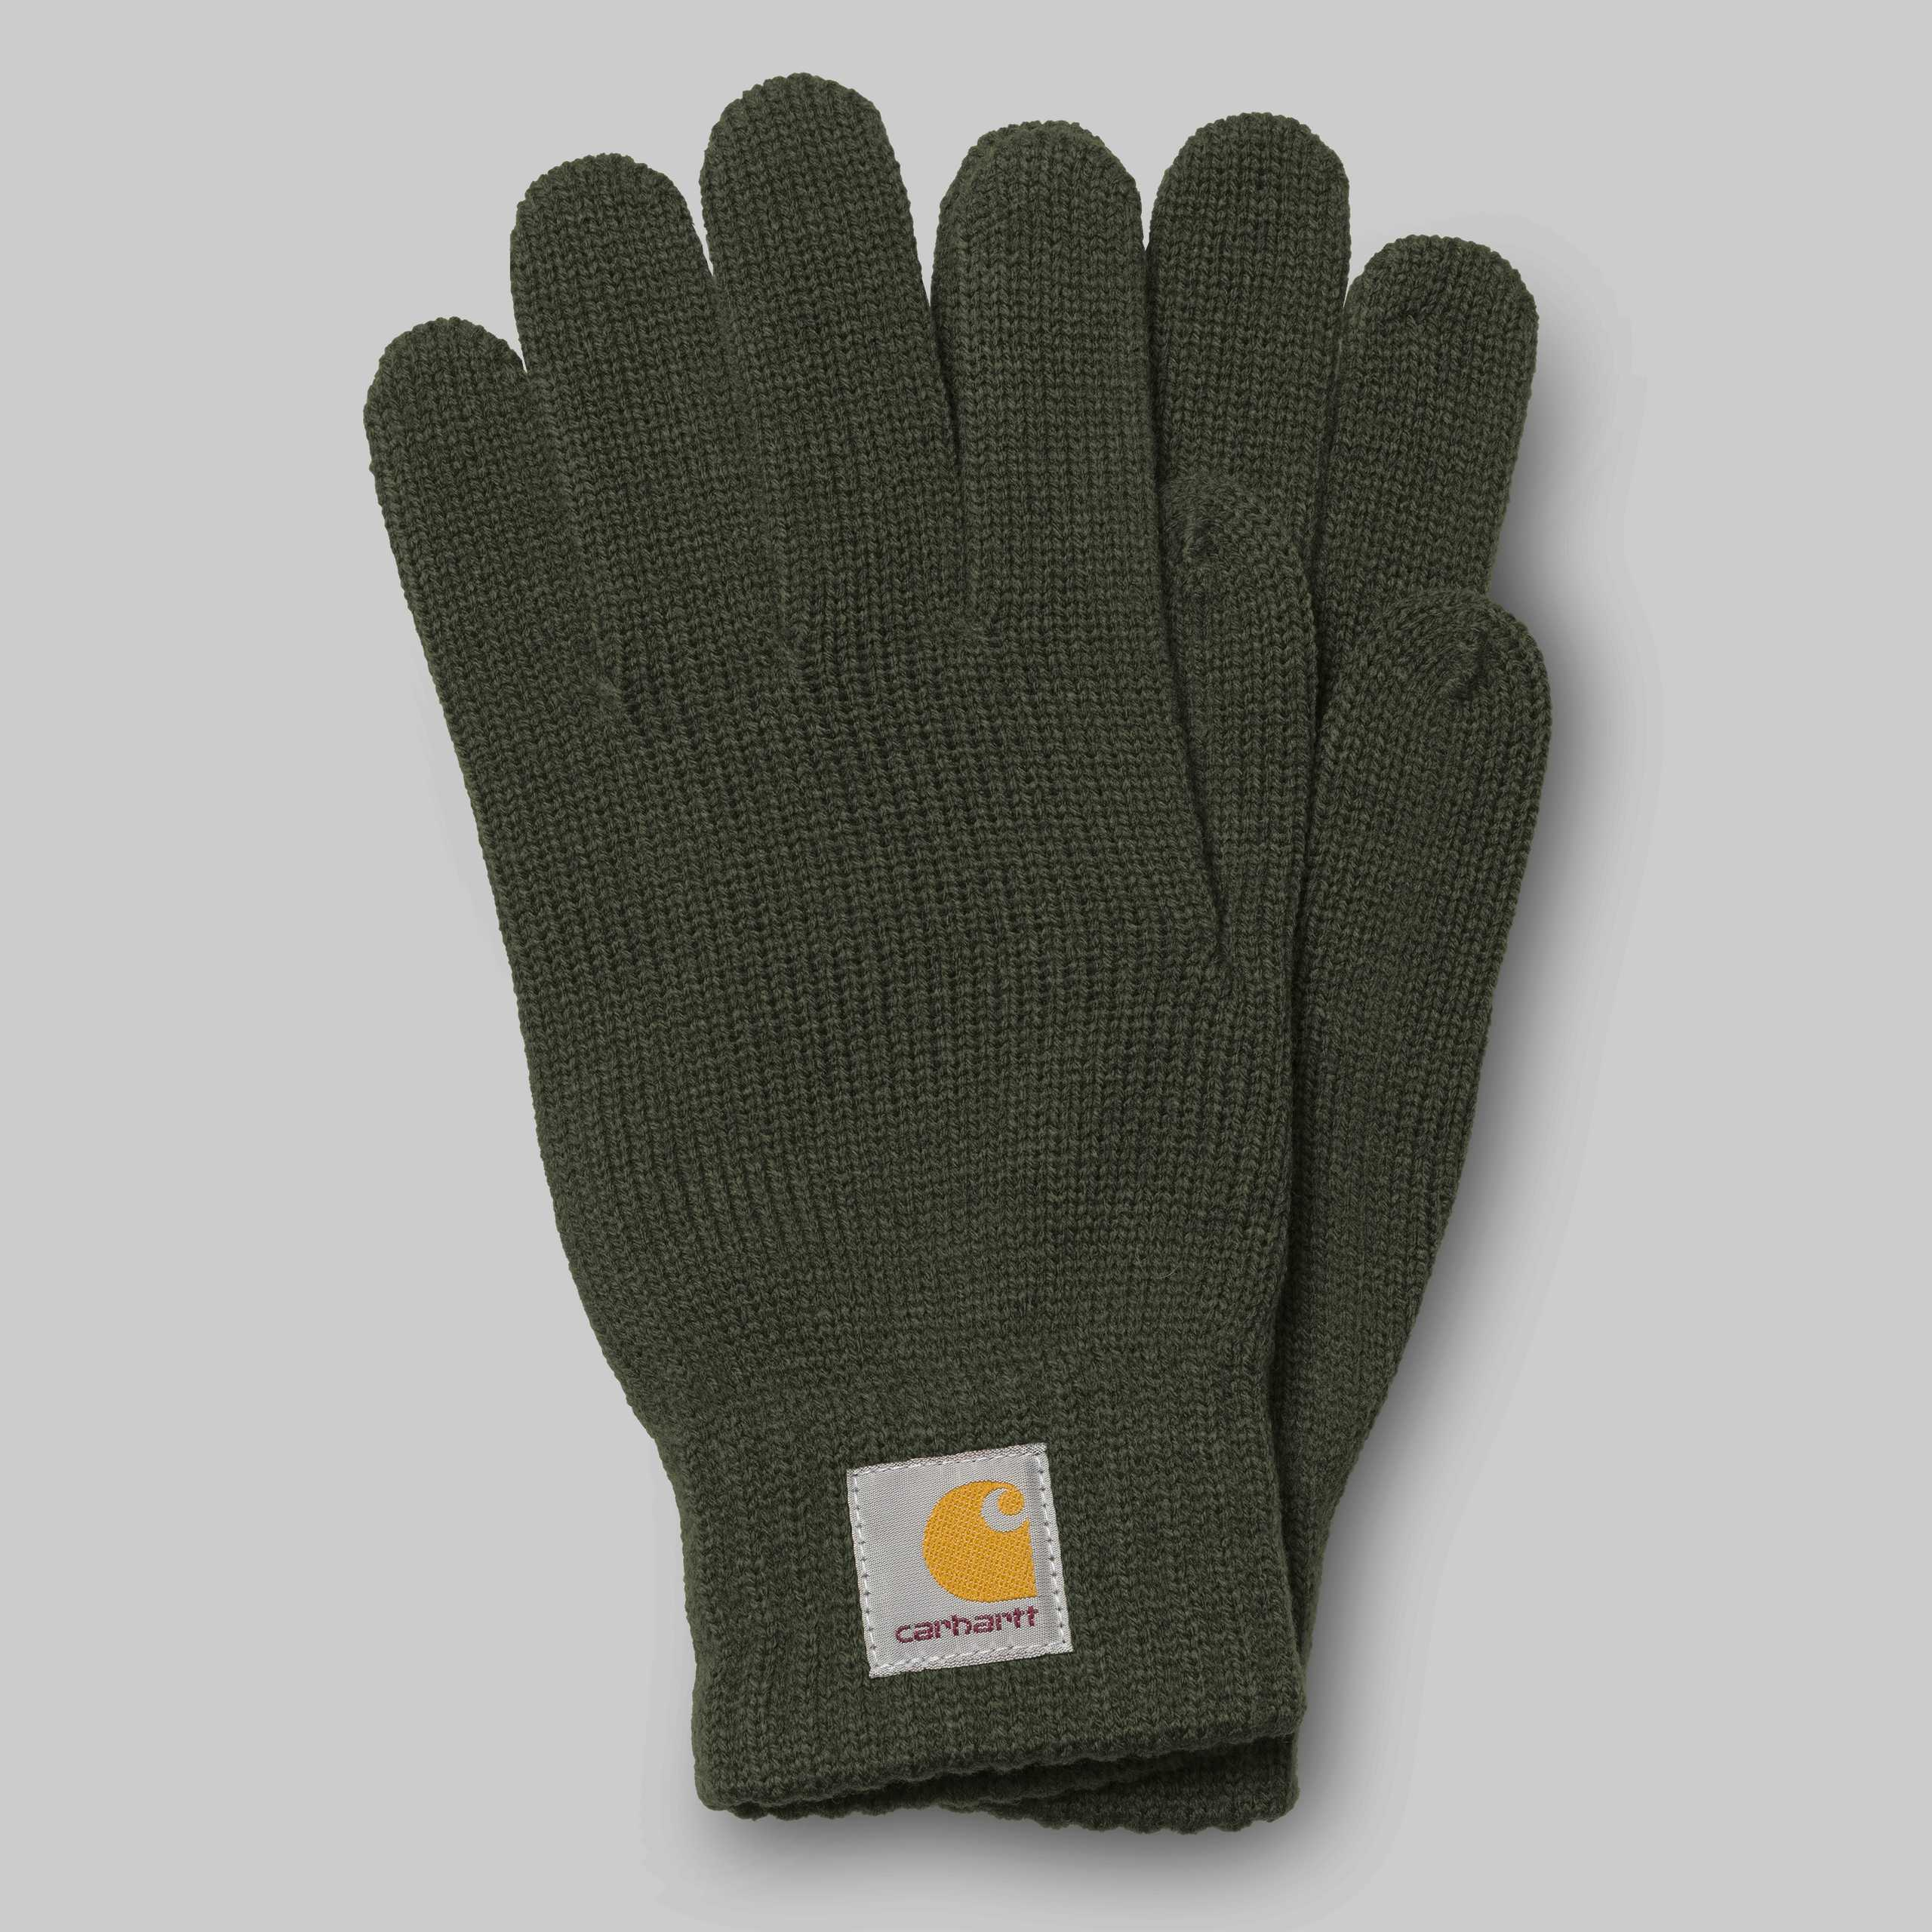 Carhartt WIP - Carhartt WIP - Watch Gloves - Parsley